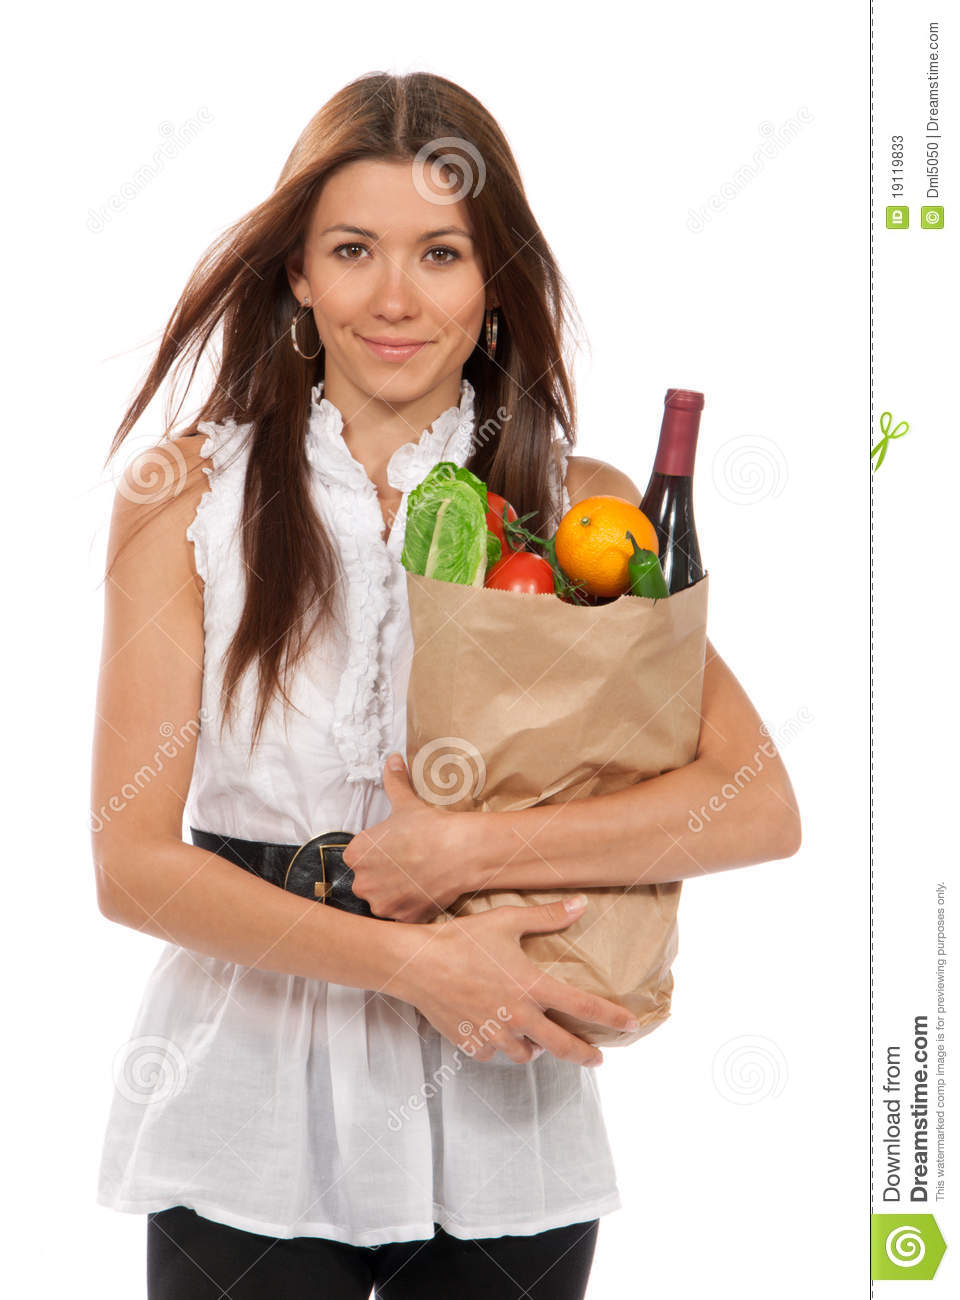 Model Young Woman Holding Grocery Bag Stock Image - Image 32225629